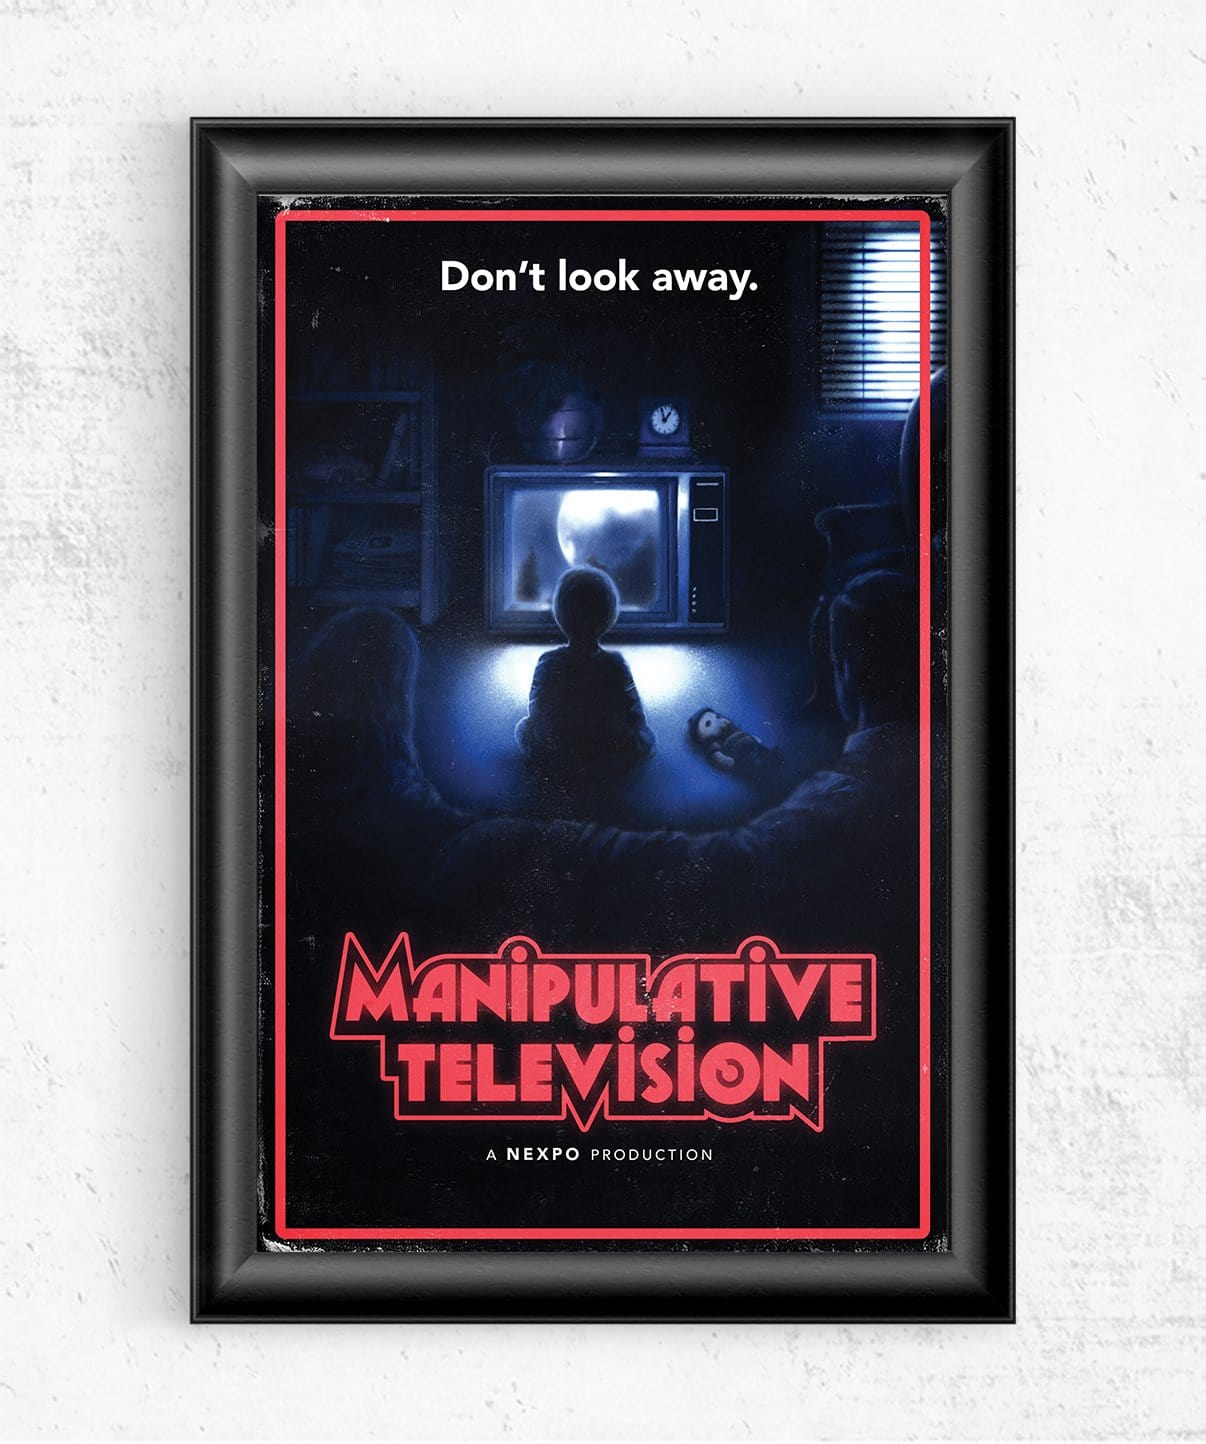 Manipulative Television Posters by Nexpo - Pixel Empire